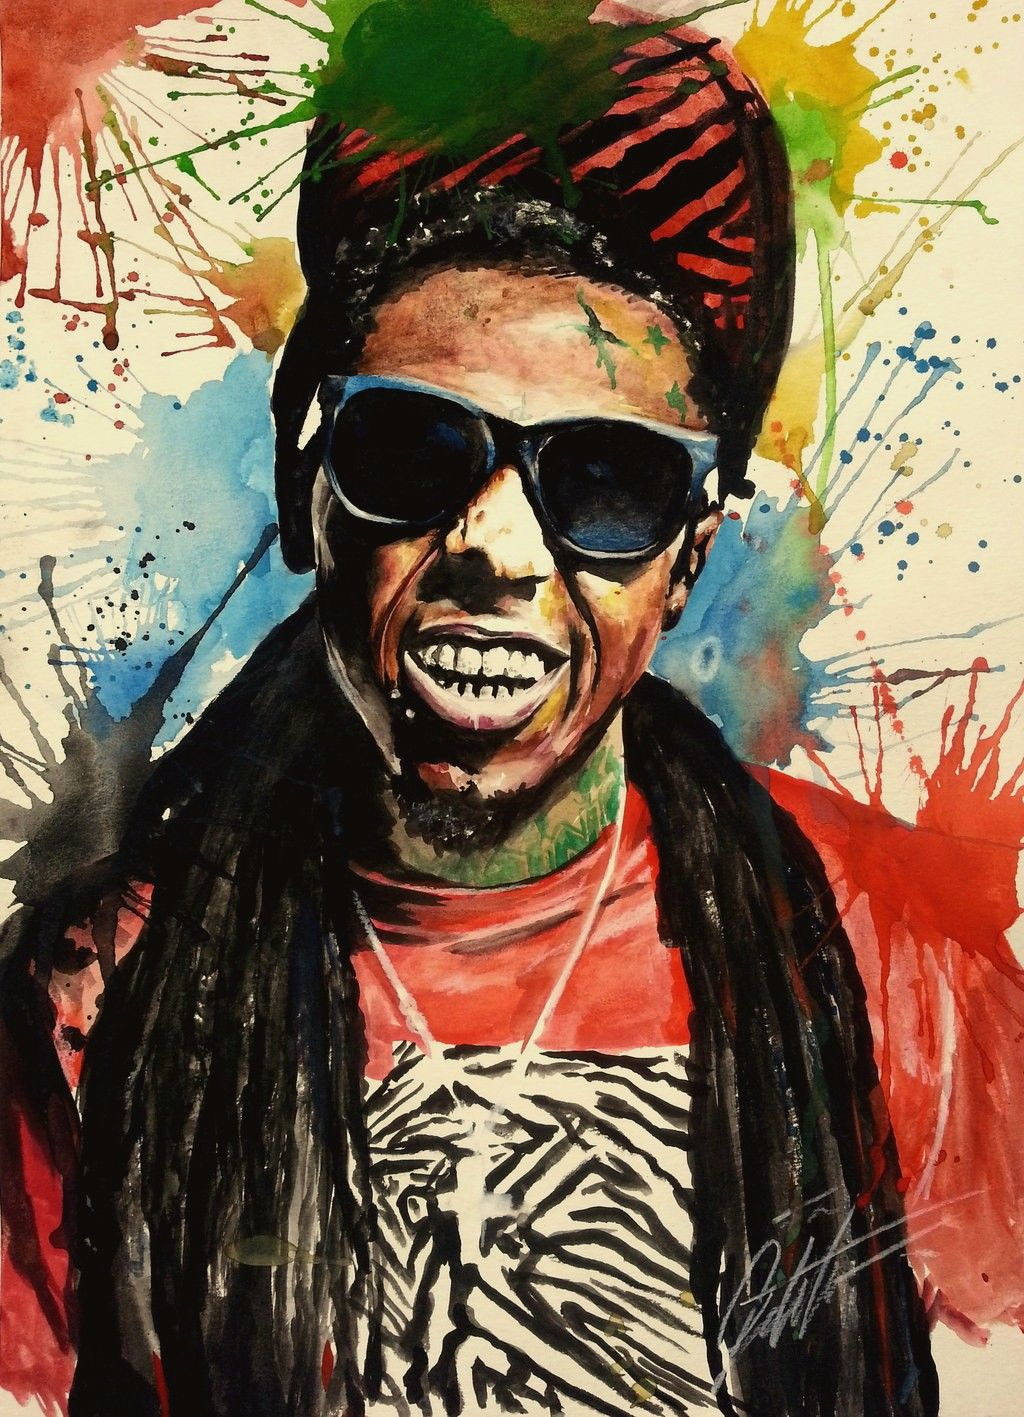 Lil Wayne HD Wallpapers Free Download 1920x1080 Backgrounds 40